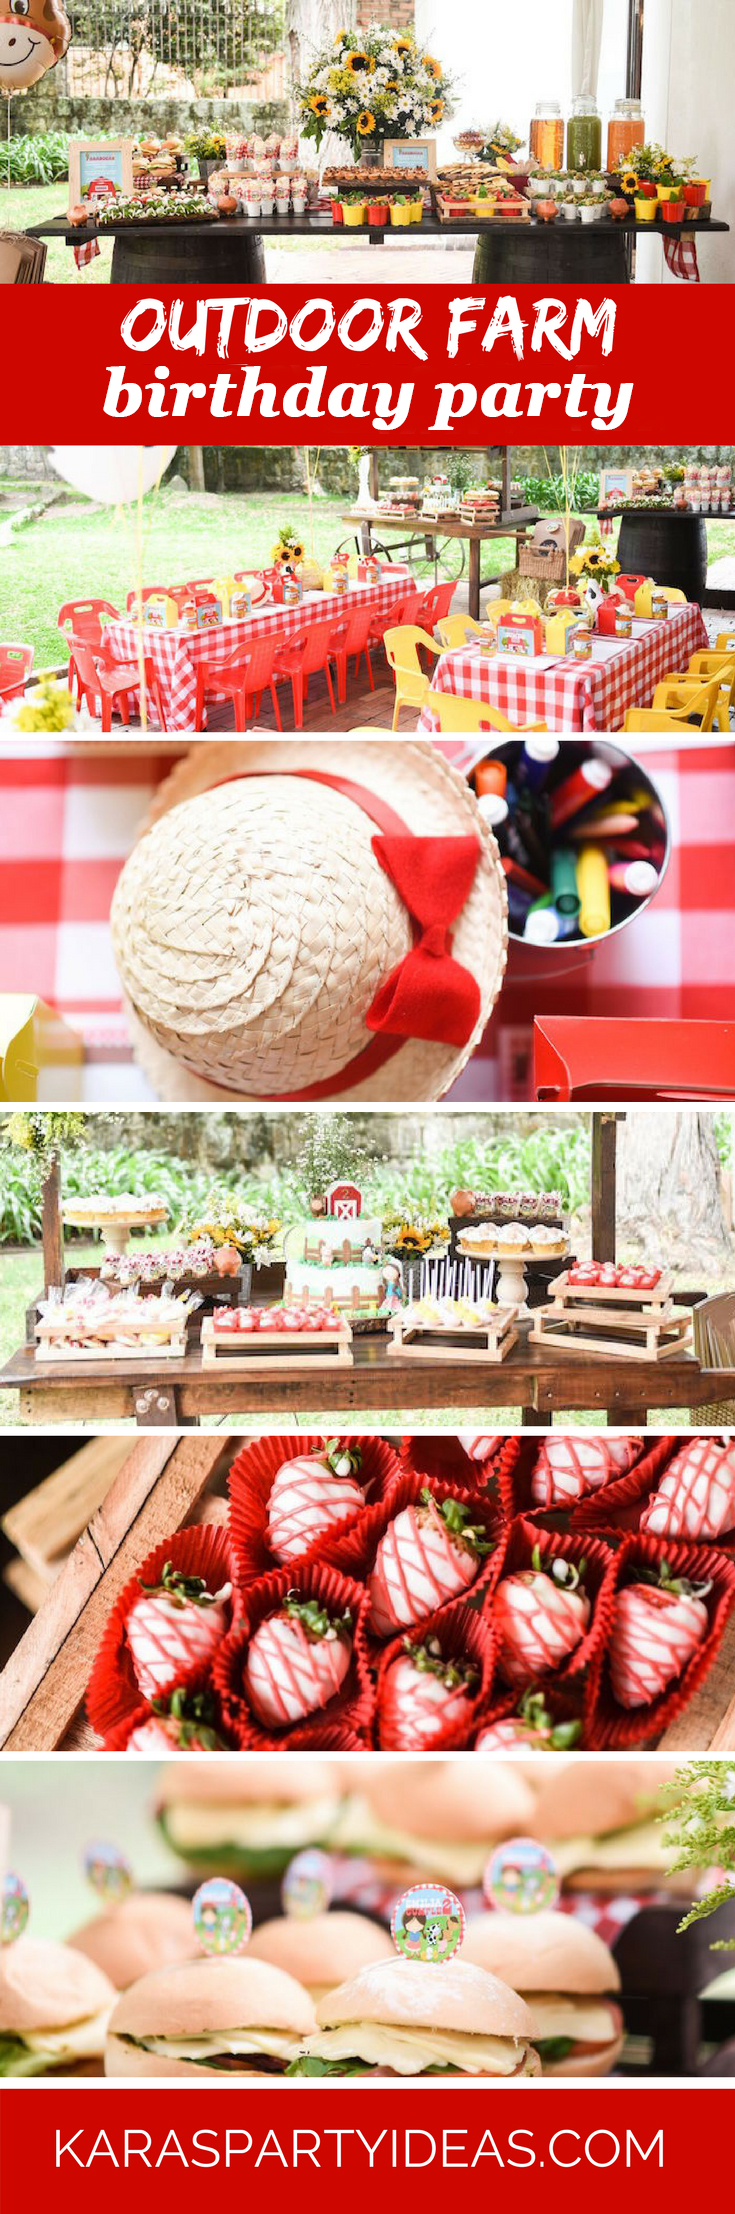 Outdoor Farm Birthday Party via Kara's Party Ideas - KarasPartyIdeas.com